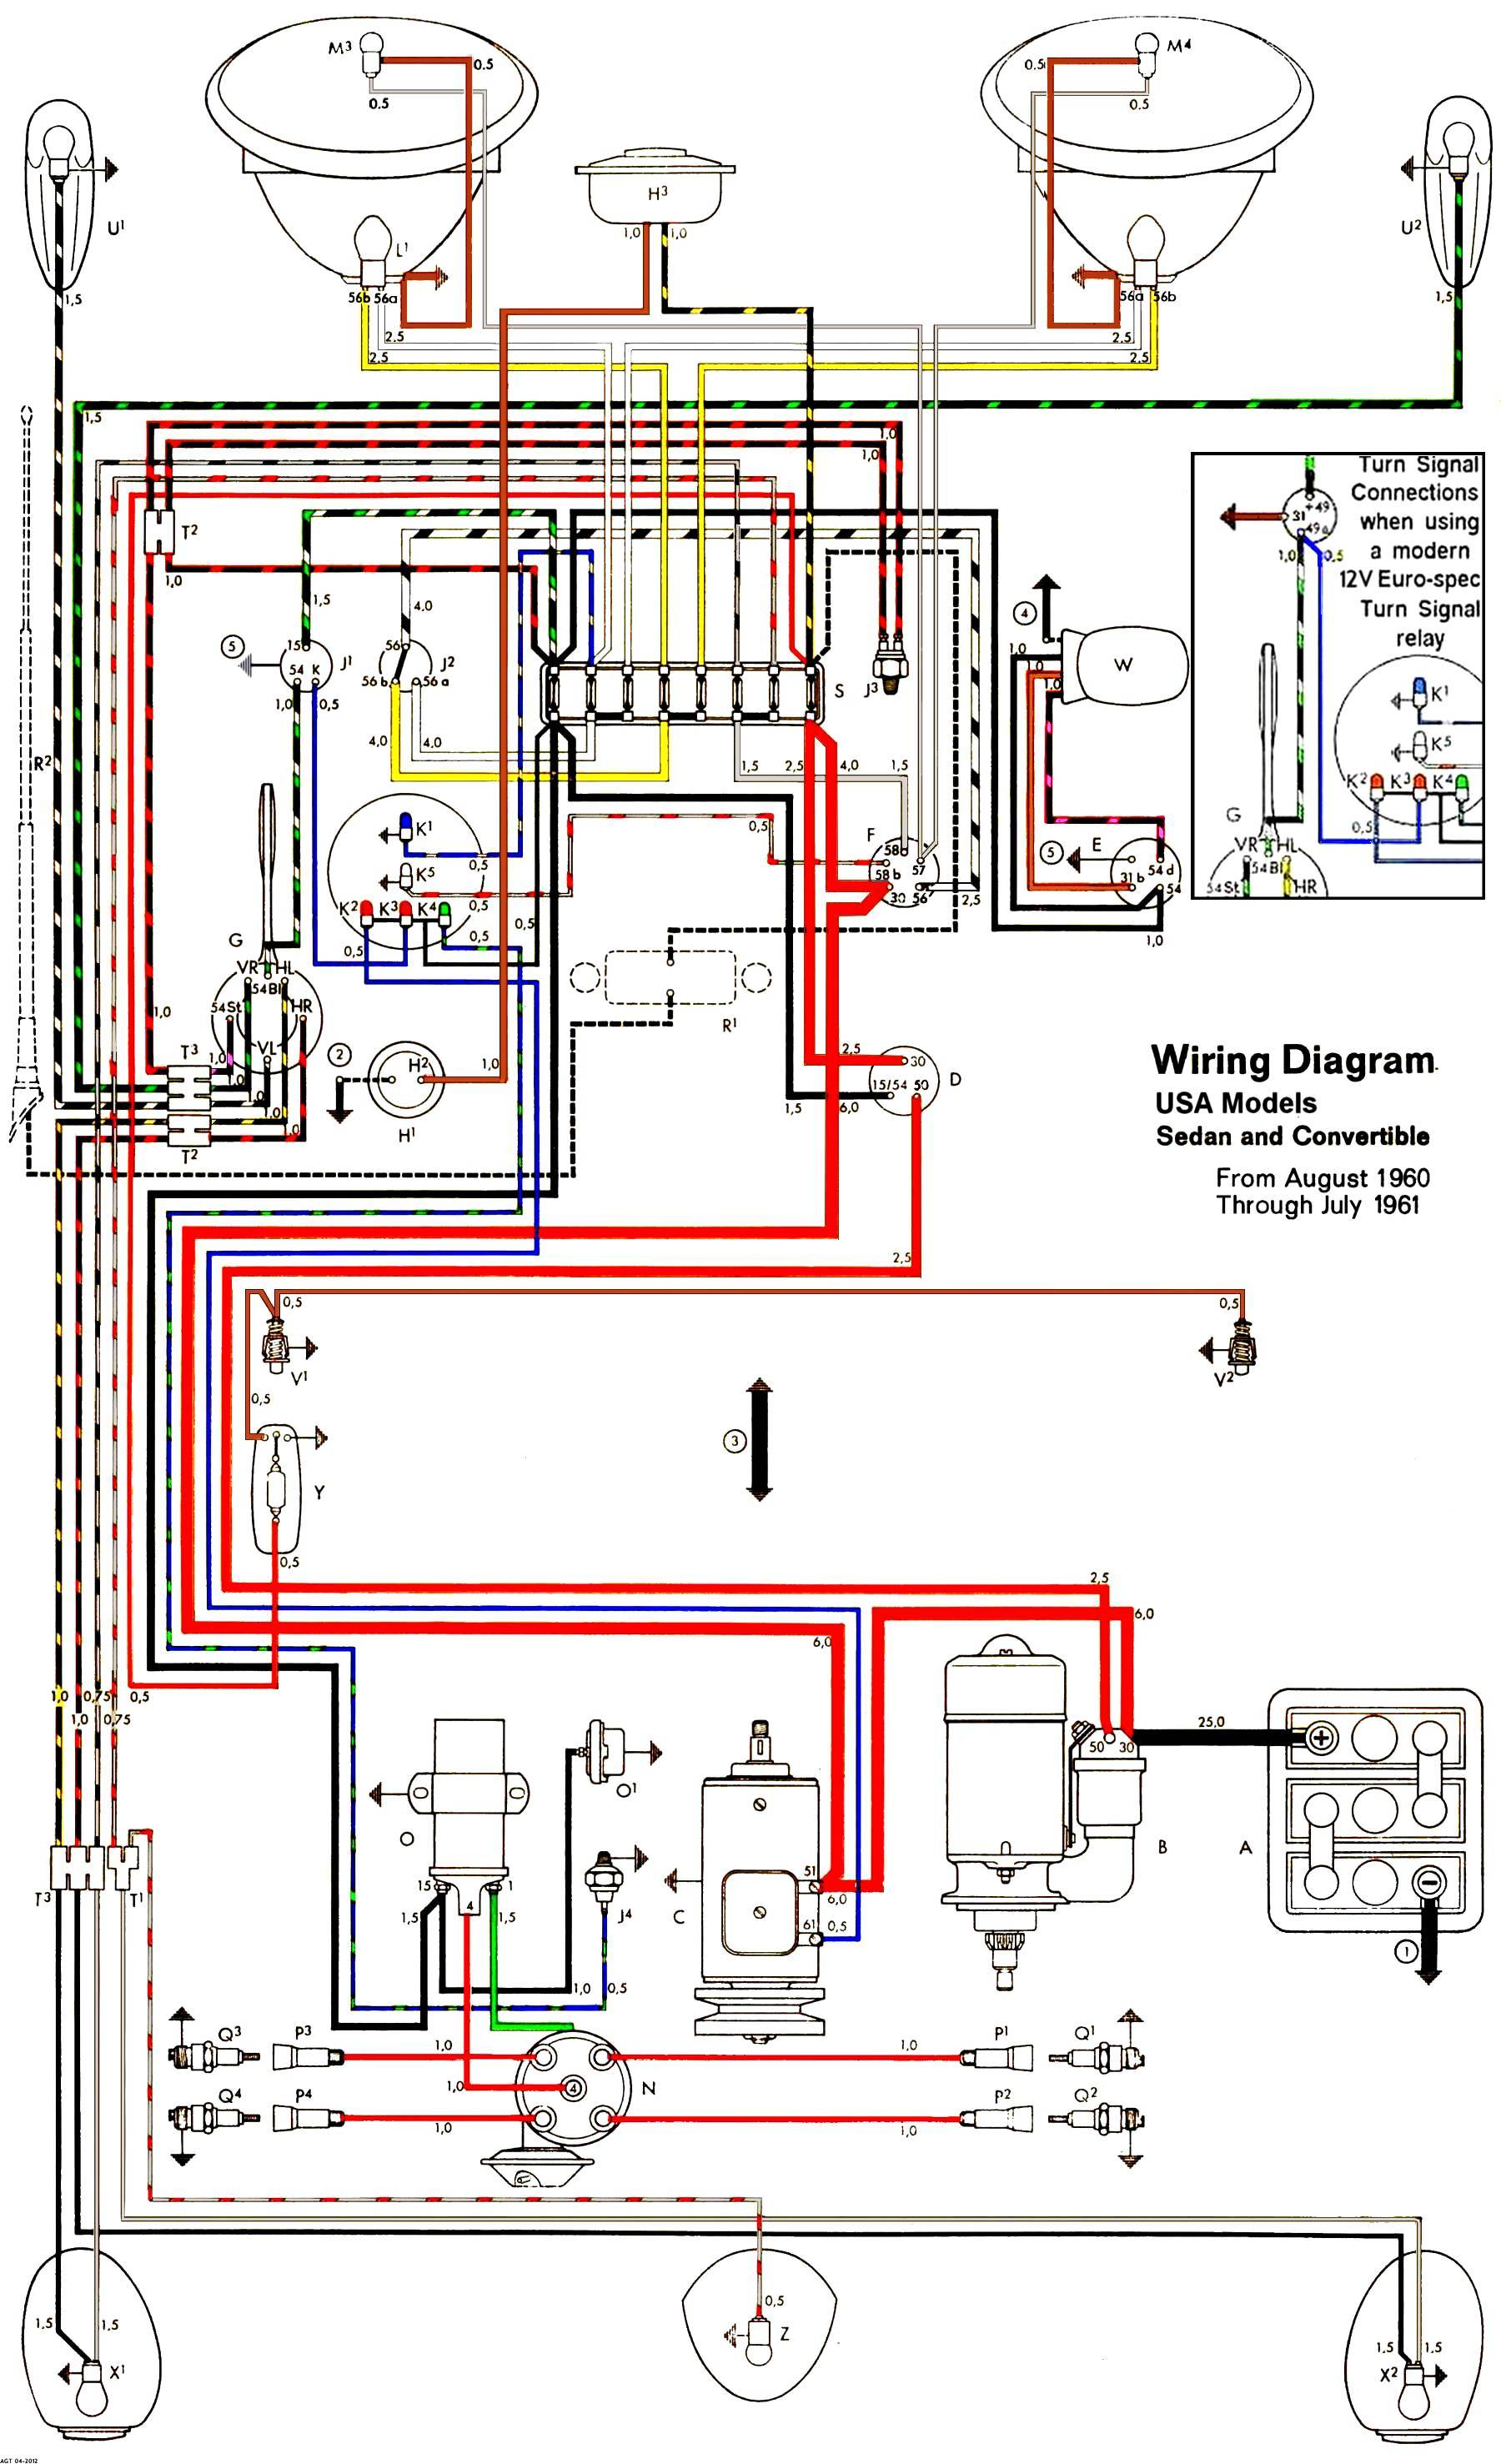 thesamba com type 1 wiring diagrams 1956 chevy fuse box diagram 1956 chevy  fuse box